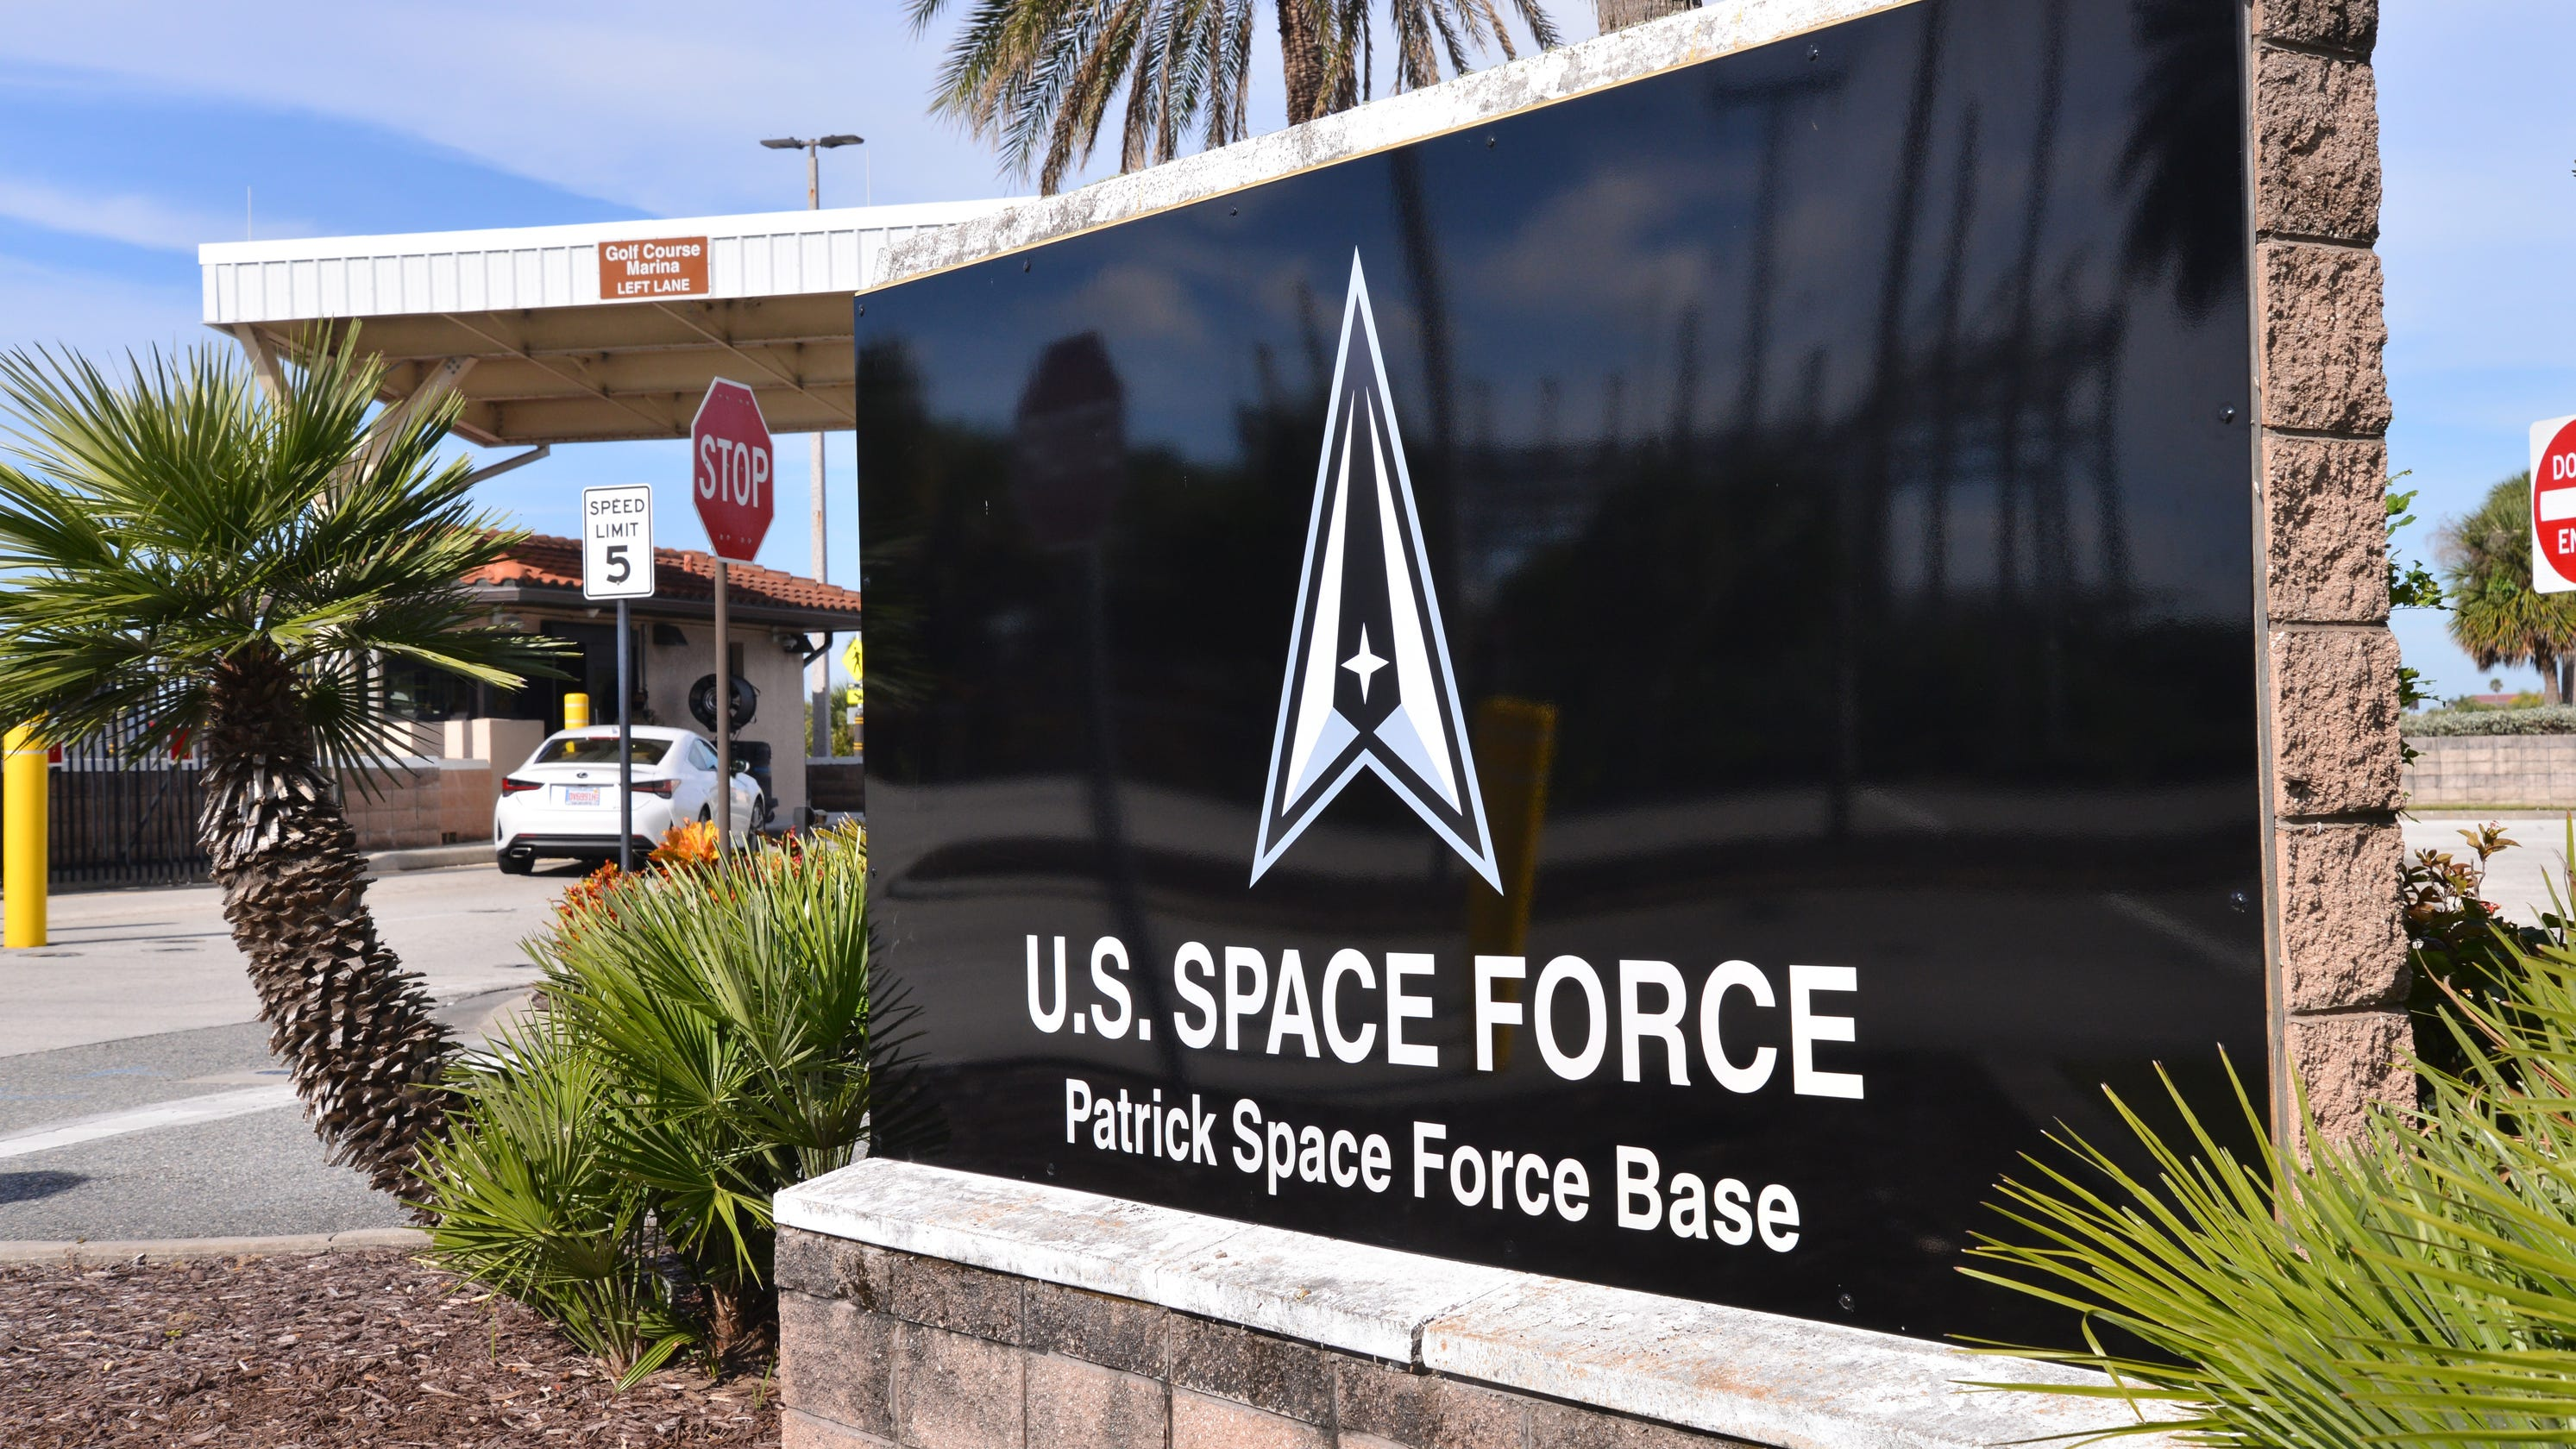 The 45th Space Wing's new name reflects Space Force status